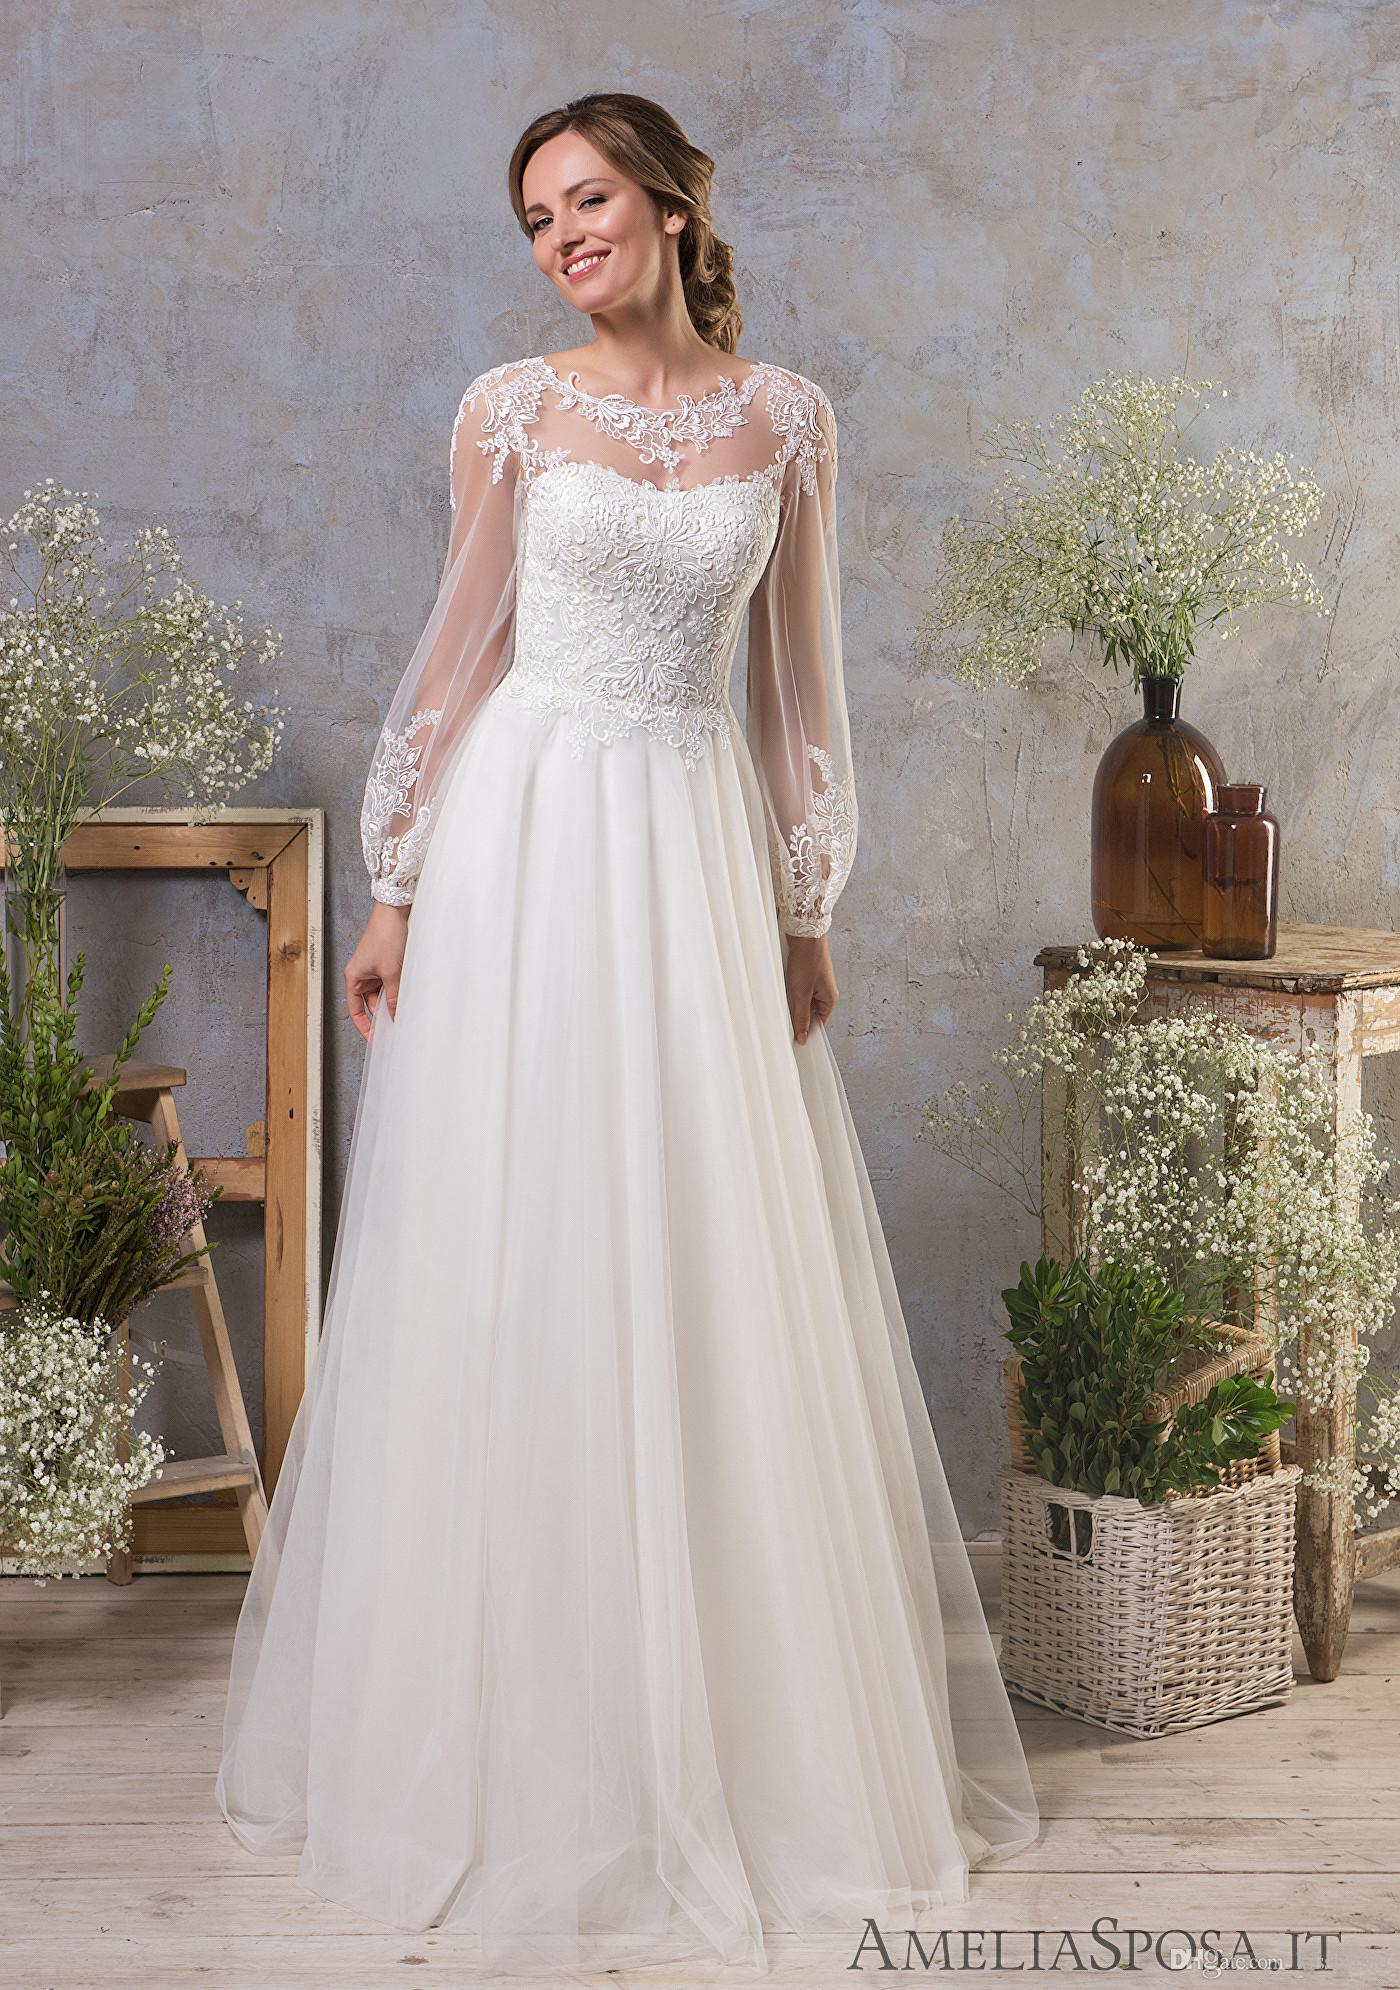 Discount Scoop Neck Wedding Dresses With Full Sleeves 2019 A Line Boho Bridal  Gowns Sheer Illusion Lace Tulle Beach Formal Dress Gown Sweetheart A Line  ... 02acf72ca28c